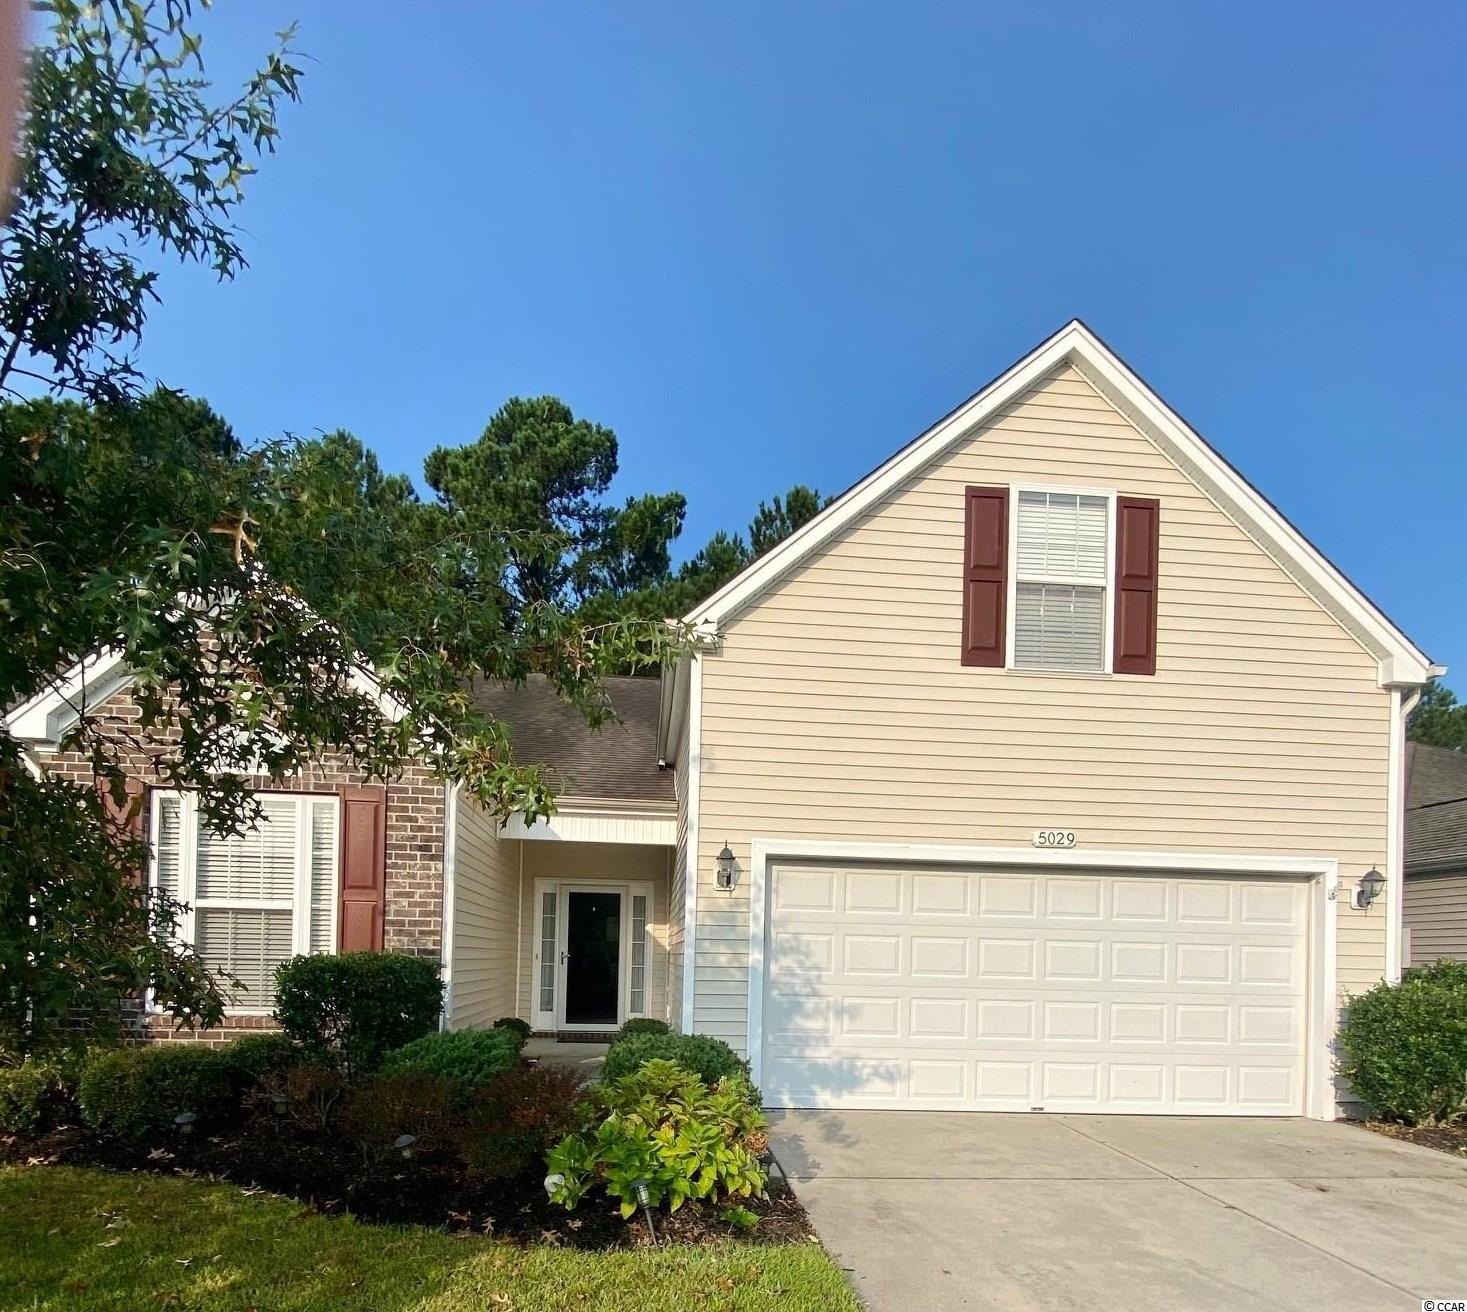 This gorgeous 4BR 2 BA home is ready for your family to enjoy and has been well maintained. The first floor provides all common area spaces with an open concept living while providing a large fourth bedroom upstairs.  The beautiful kitchen has stainless steel appliances, stunning backsplash, large pantry and overlooks the dining and living room areas. This home has a large master bedroom with a master bath to include double sinks, a shower and two linen closets.  Square footage is approximate and not guaranteed. Buyer is responsible for verification.  The Farm at Carolina Forest is known for multiple pools, playground, basketball, walking trails and also has a fitness center! Award winning schools, shopping, dining, airport and medical facilities all close by. Not to mention less than 6 miles to the beautiful beach!